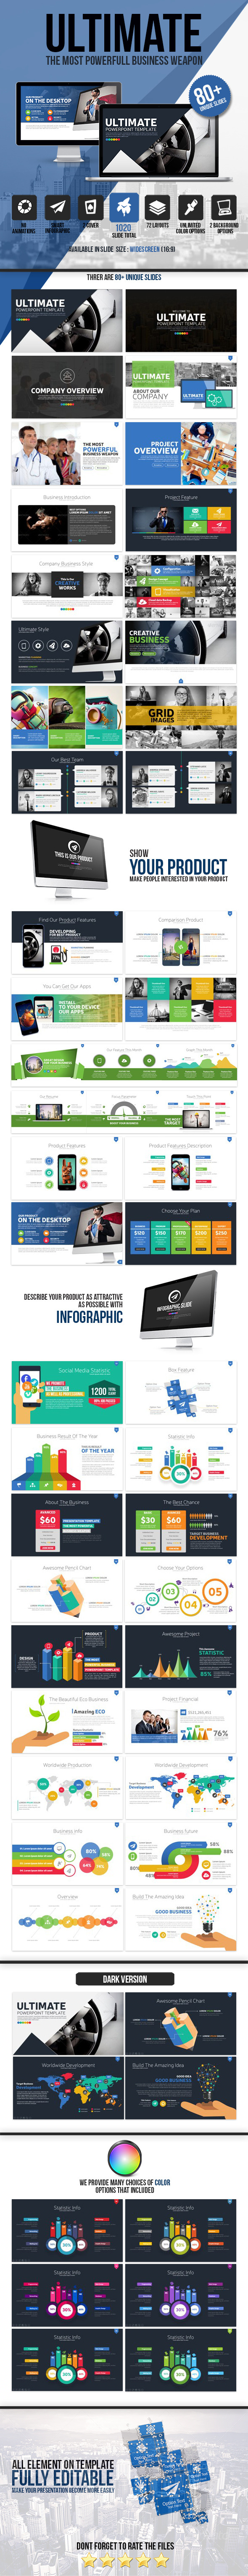 Ultimate Presentation Template - Business PowerPoint Templates